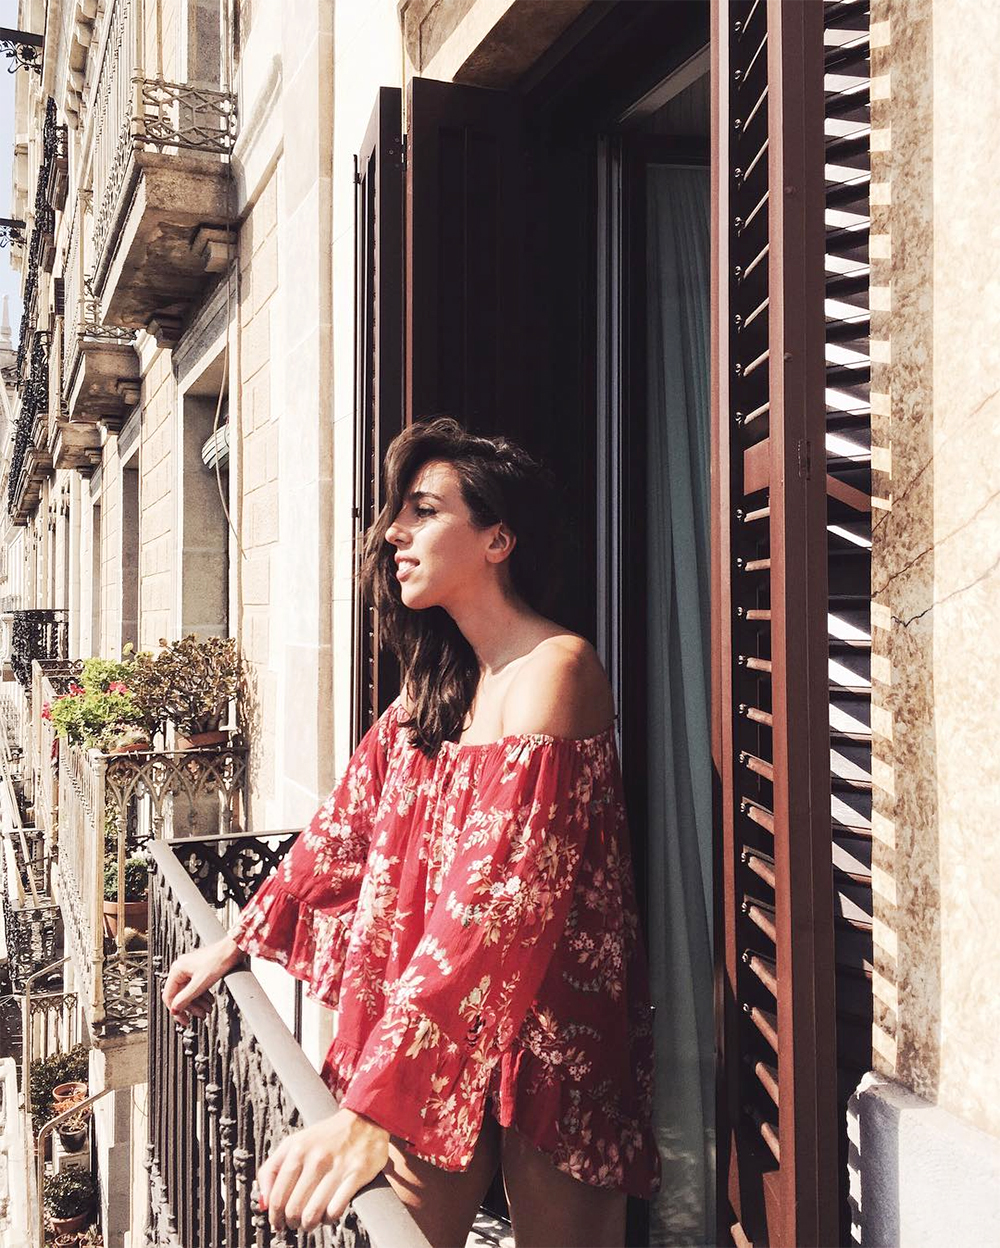 sania-claus-demina-the-serras-hotel-barcelona-ralph-lauren-denim-and-supply-top-off-shoulder-floral-red-balcony-hanna-stefansson-fall-2016_1